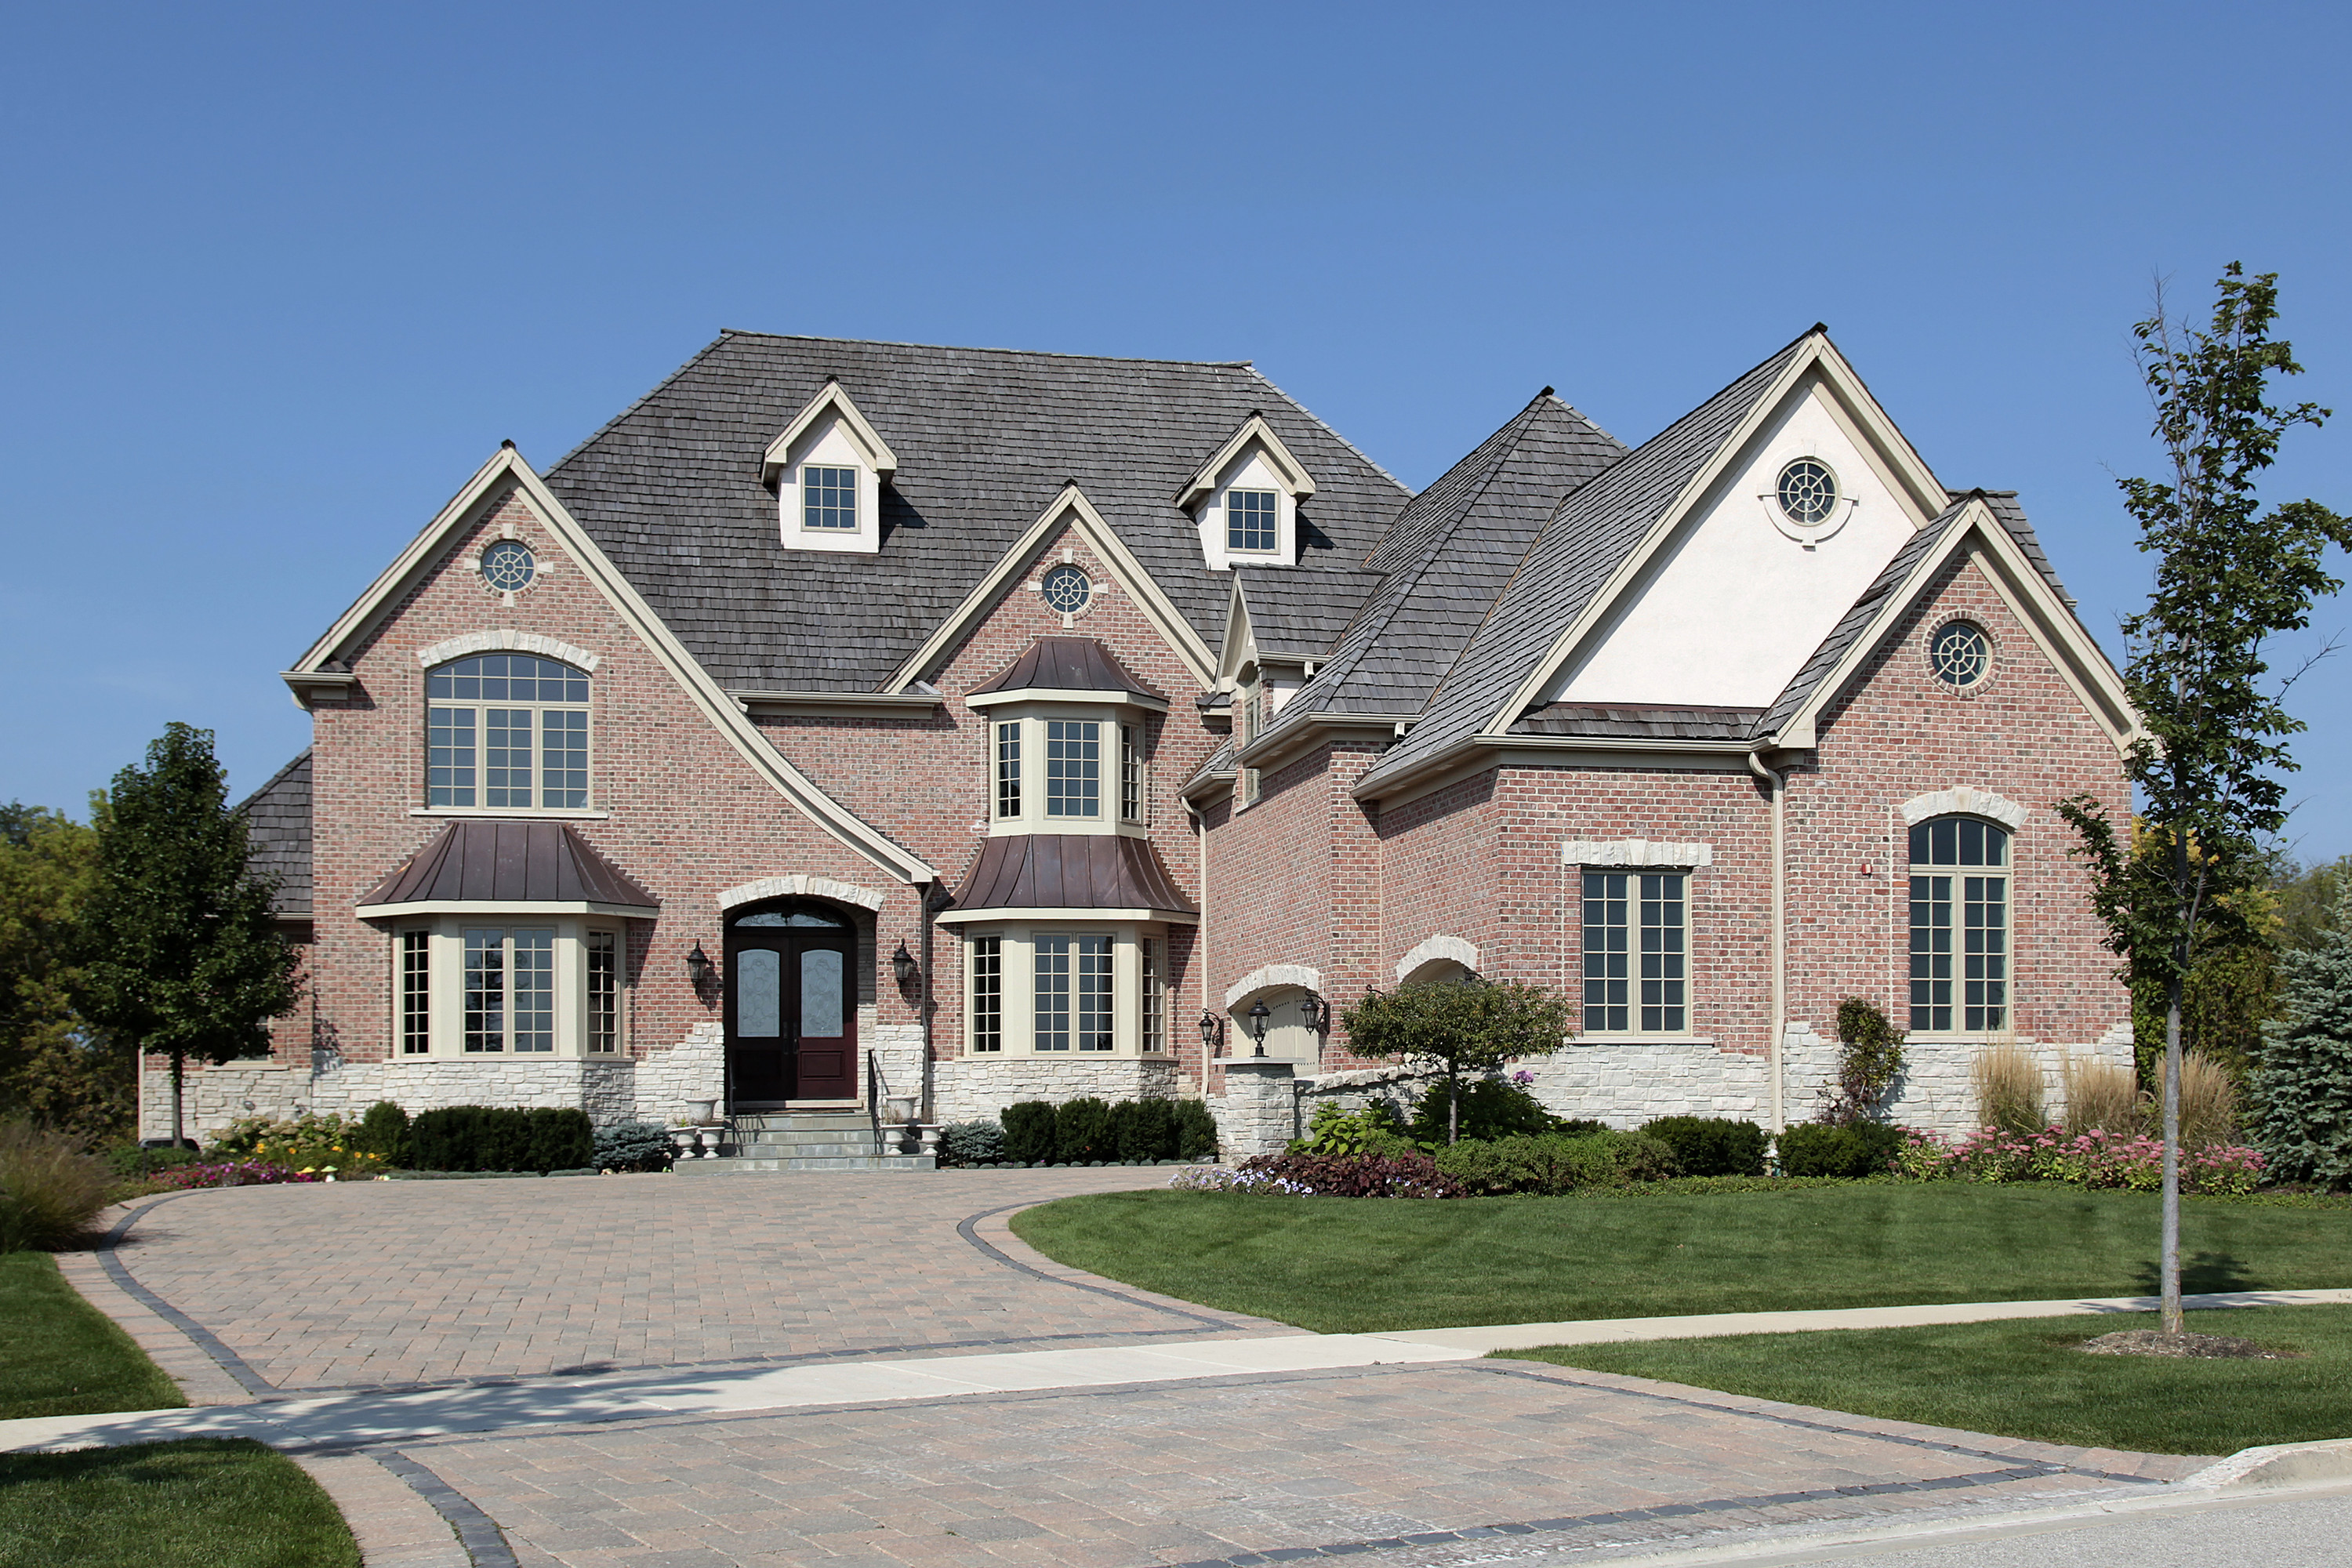 Buying a home in O'fallon, is it really that easy?